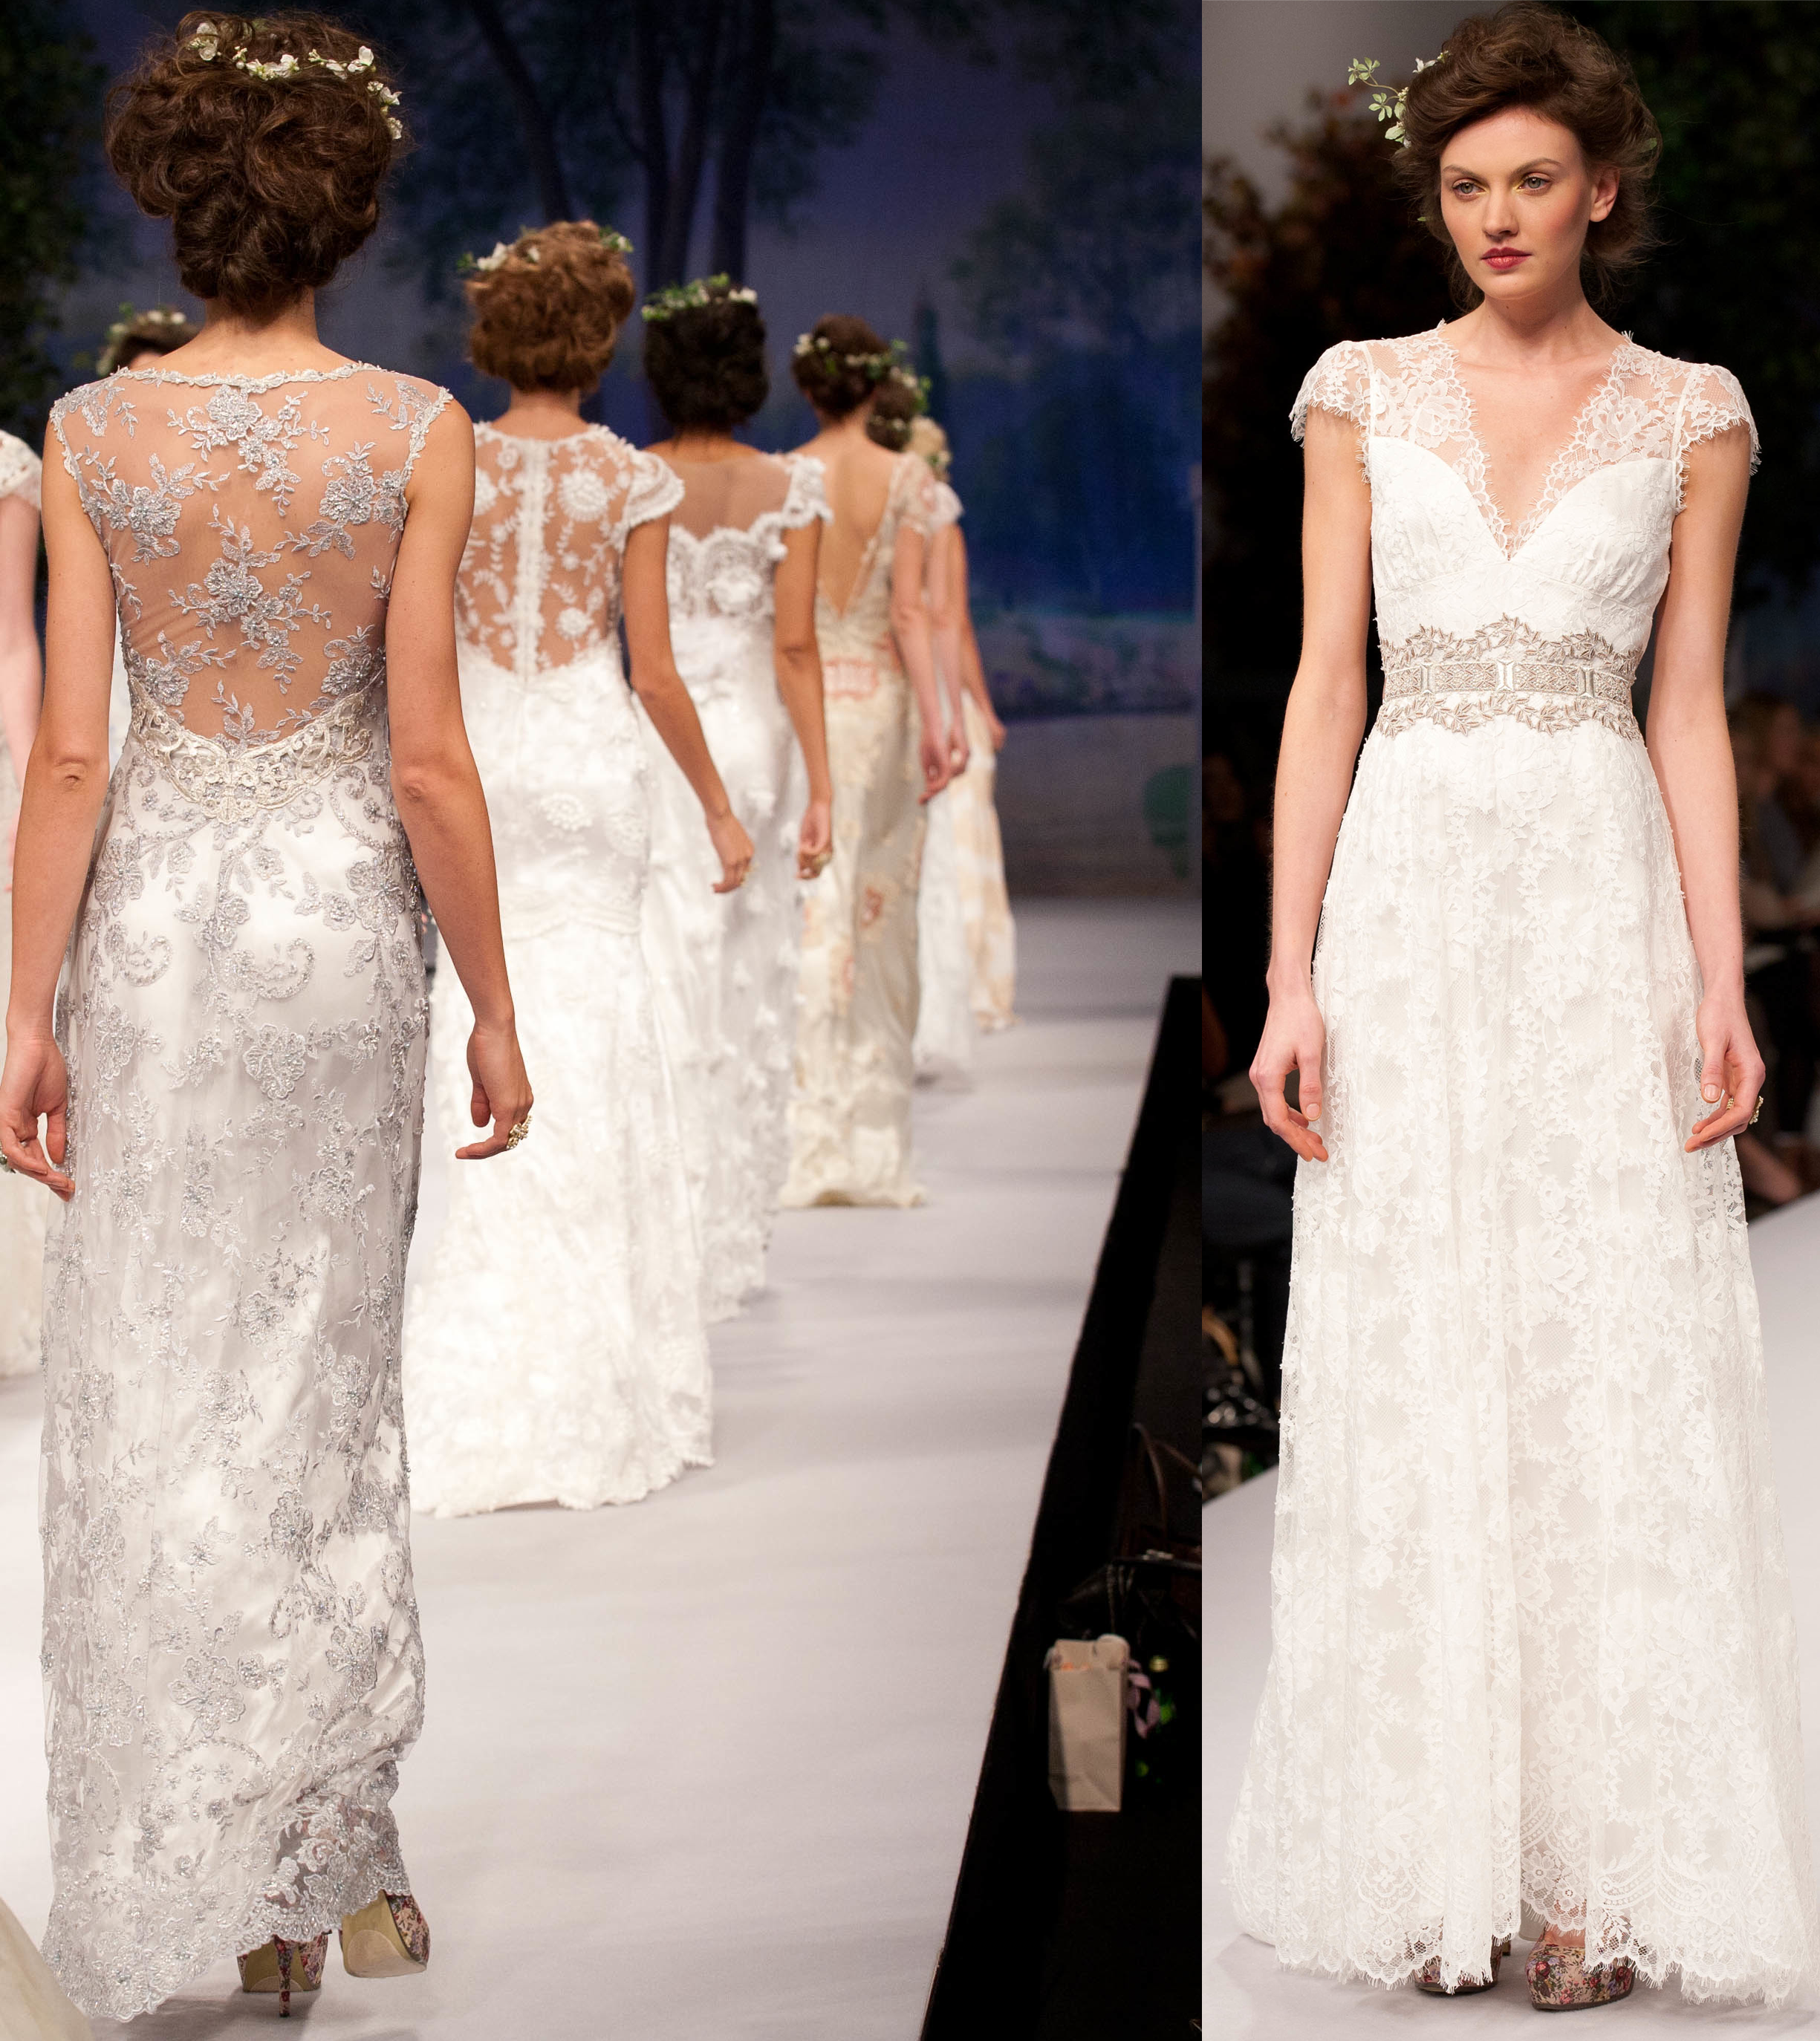 Claire Pettibone Wedding Gowns: Sheer Cap Sleeves, Translucent Wedding Dress Backs